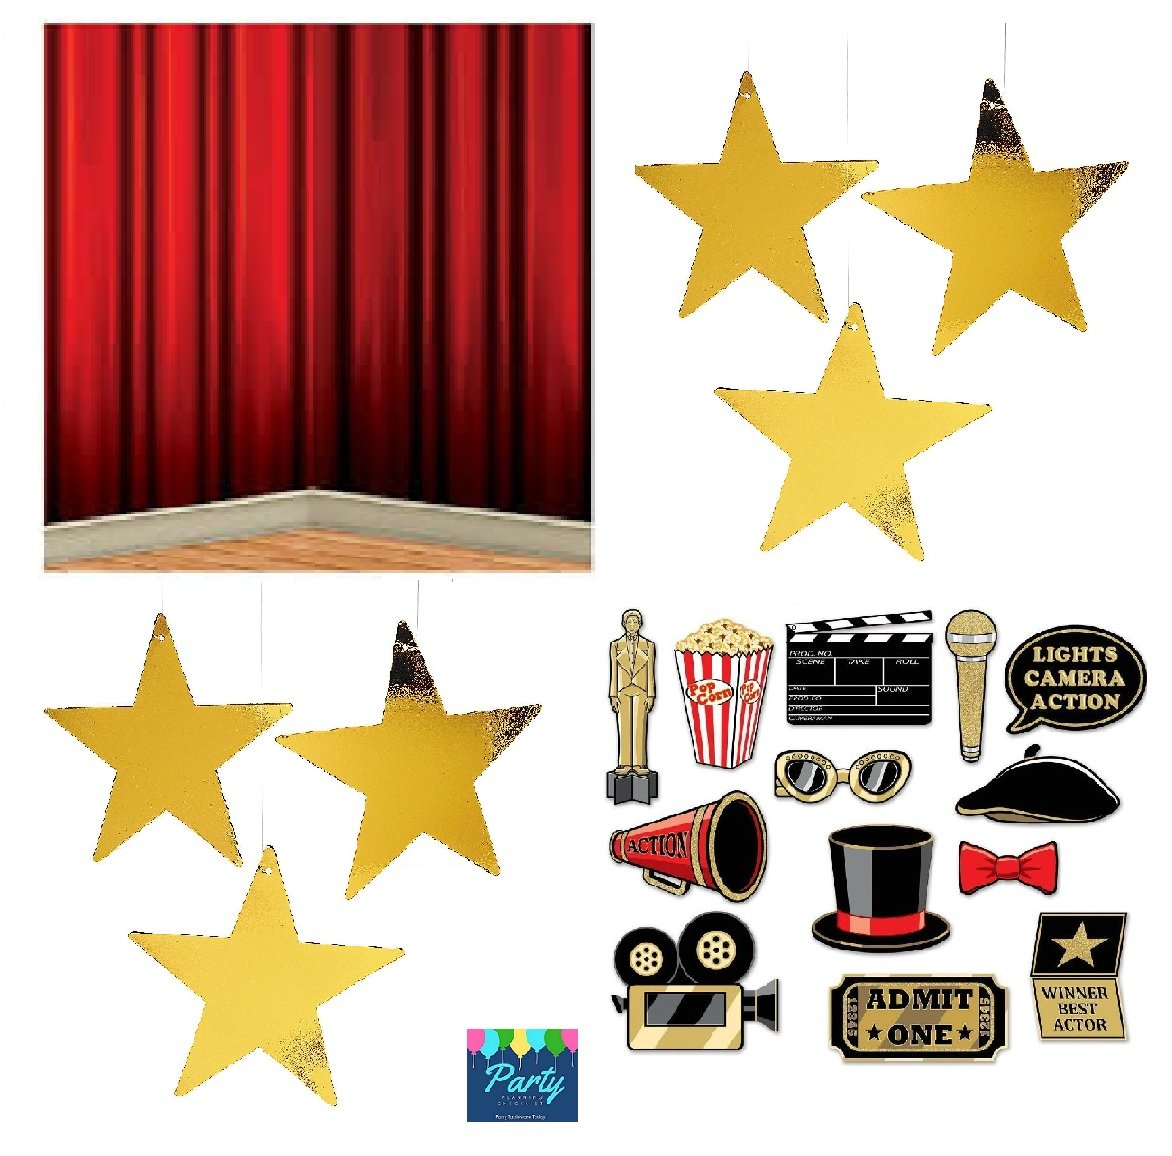 FAKKOS Design Hollywood Red Carpet Awards Ceremony Party Theme Supplies and Decorating Pack - 3 Items - Glitter Photo Props, Red Curtain Back Drop And 24 Gold Metallic Hanging Stars